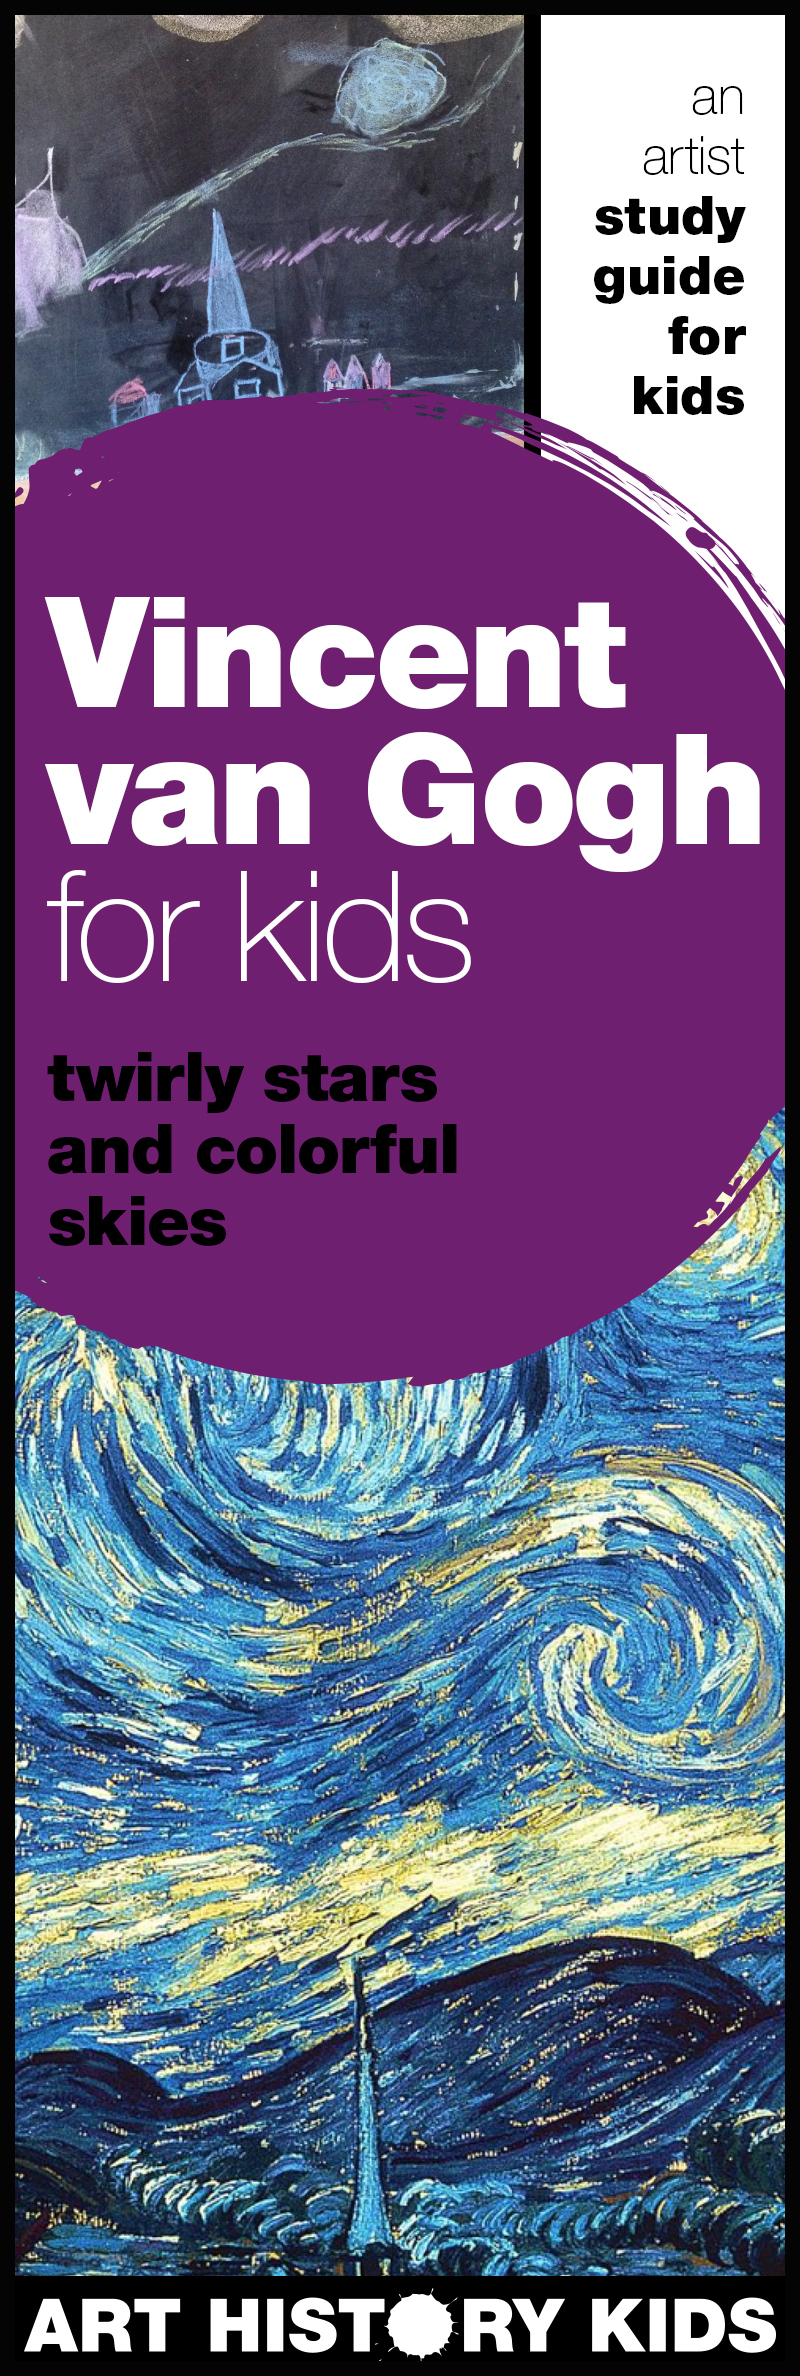 Explore The Starry Night and the art of Vincent van Gogh with your kids. This guide leads you through a discussion, observation, and creative open-ended project suggestions!